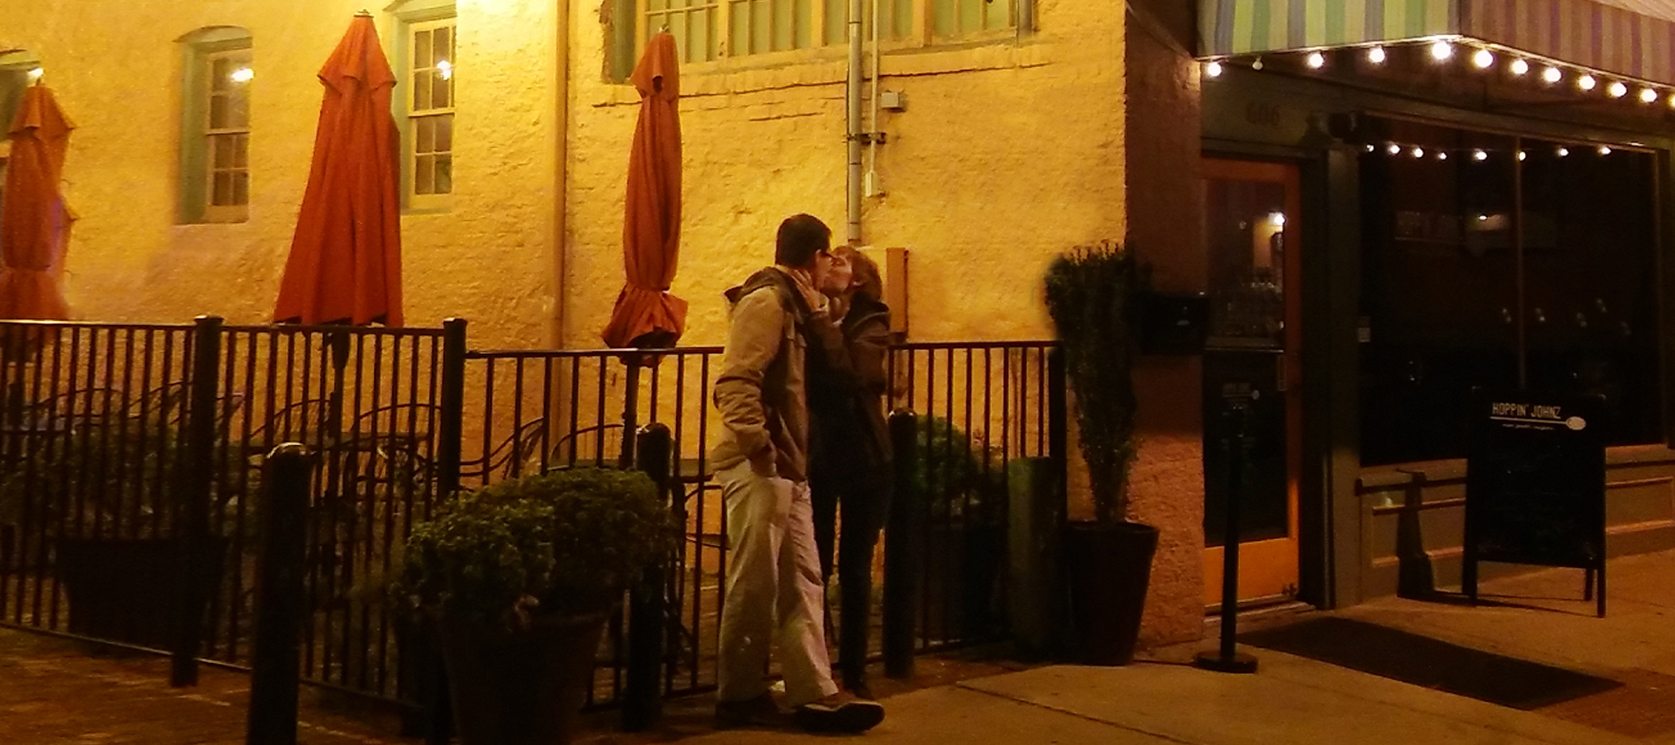 Romantic Couple kissing in front of Pailin's Alley and Hoppin' Johnz